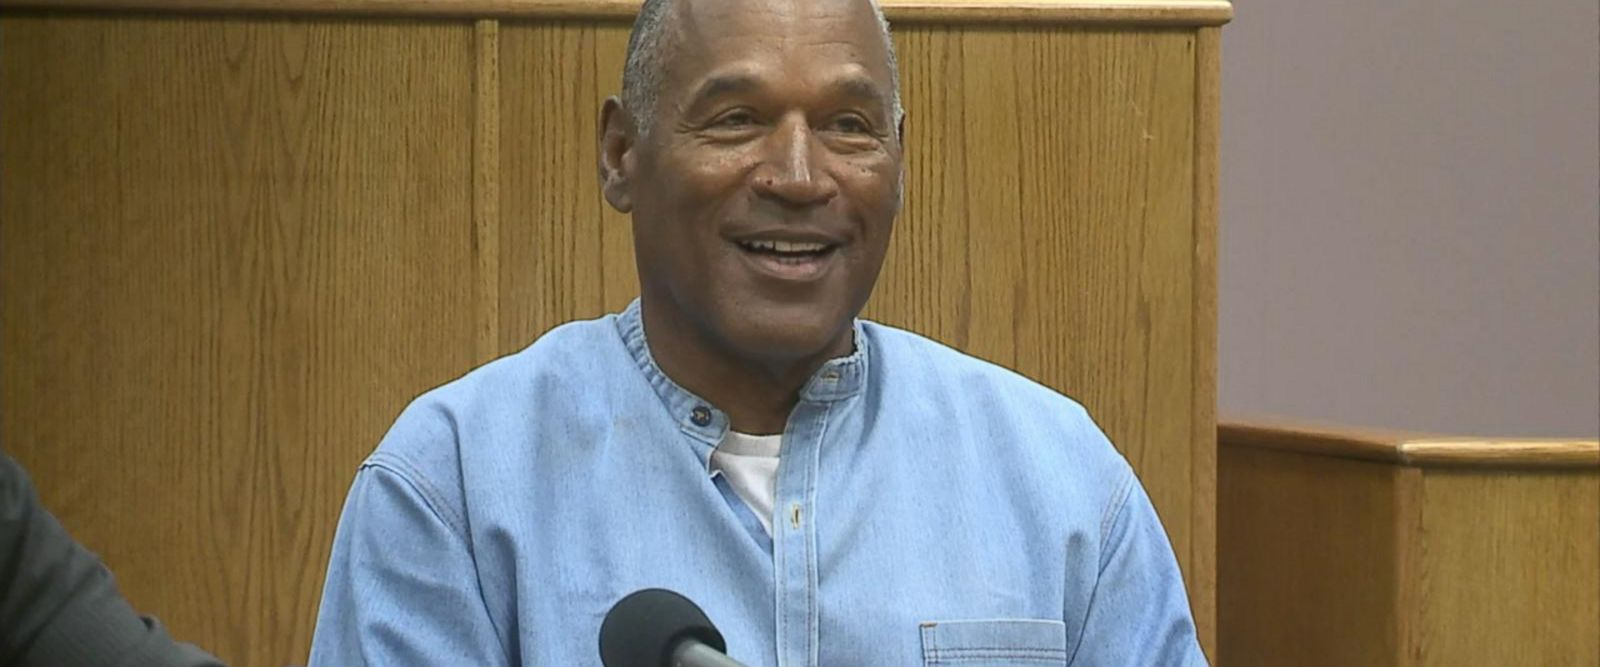 VIDEO: Unanimous vote to grant OJ Simpson parole